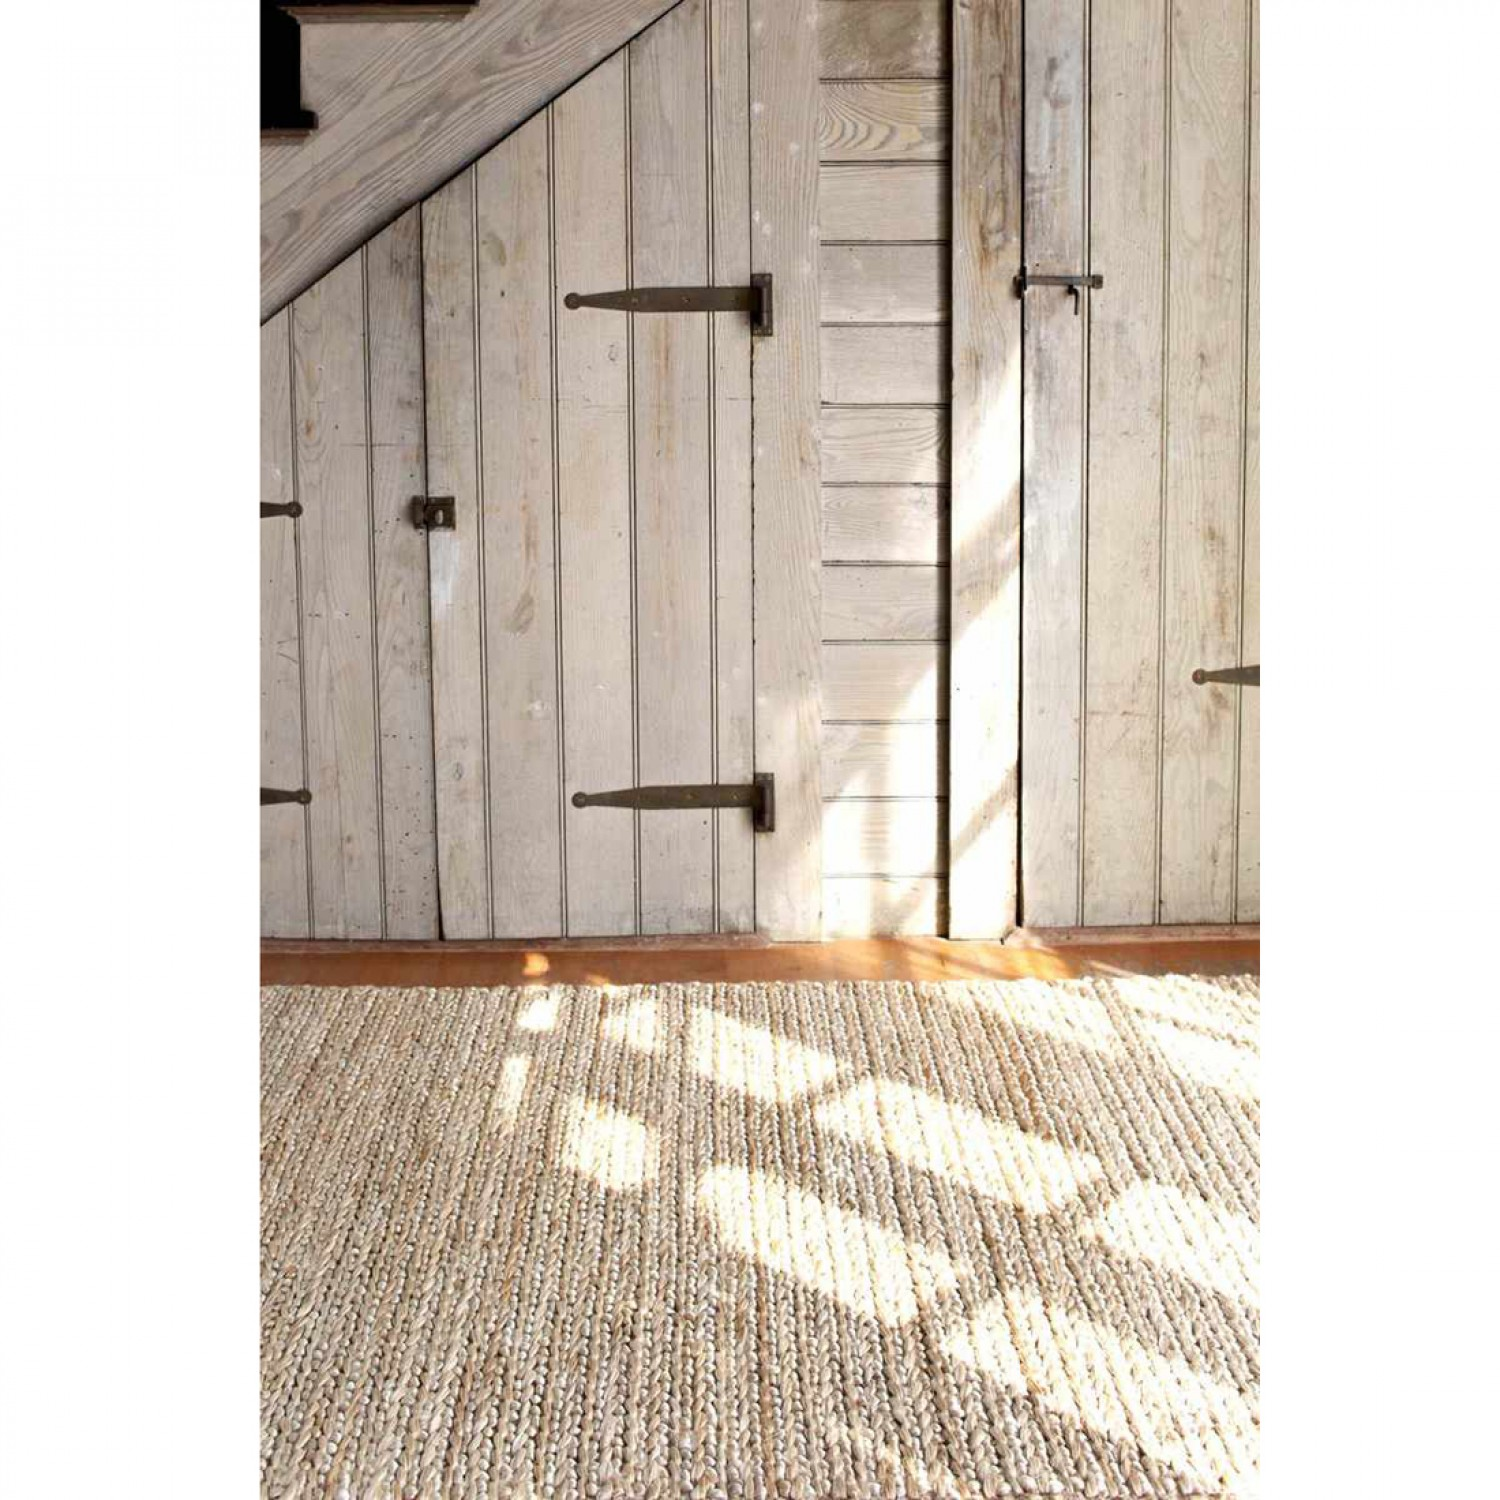 Dash And Albert Rugs natural jute woven on wooden floor which matched with white wall for interior design ideas